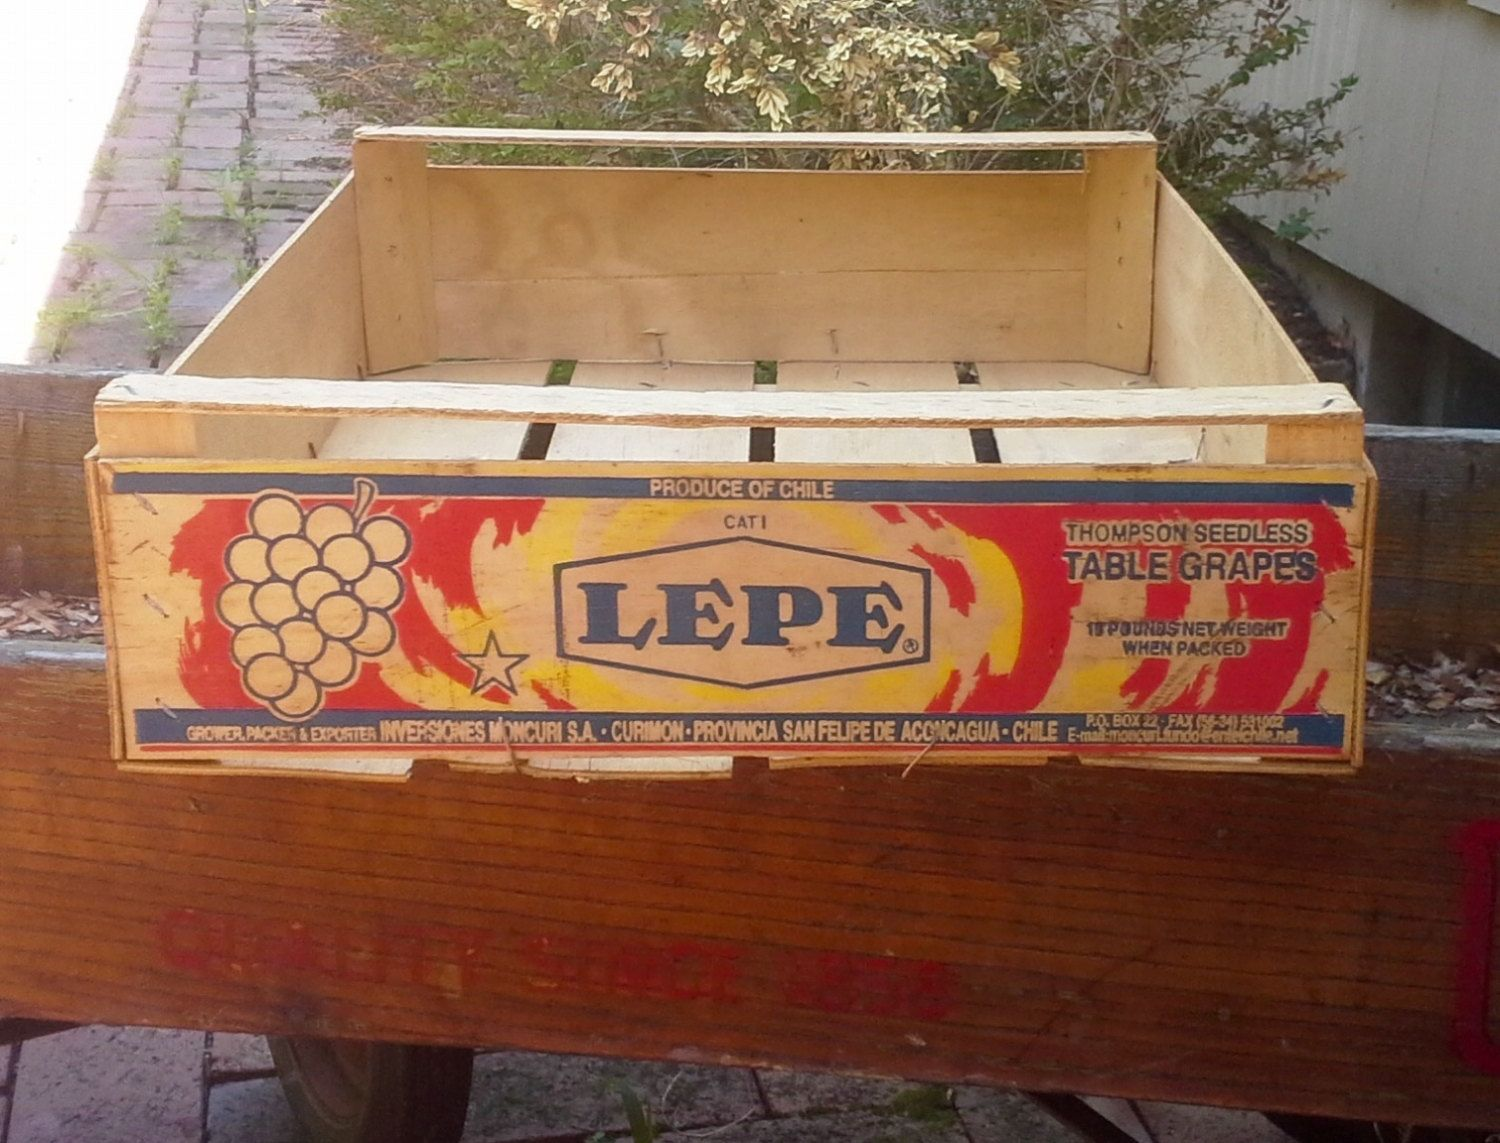 Vintage Lepe Wooden Grape Crate Wood Produce Crate Wooden Crates Food Crate Rustic Wedding Decor Industrial Crate Wood Wooden Crates Crates Wooden Crate